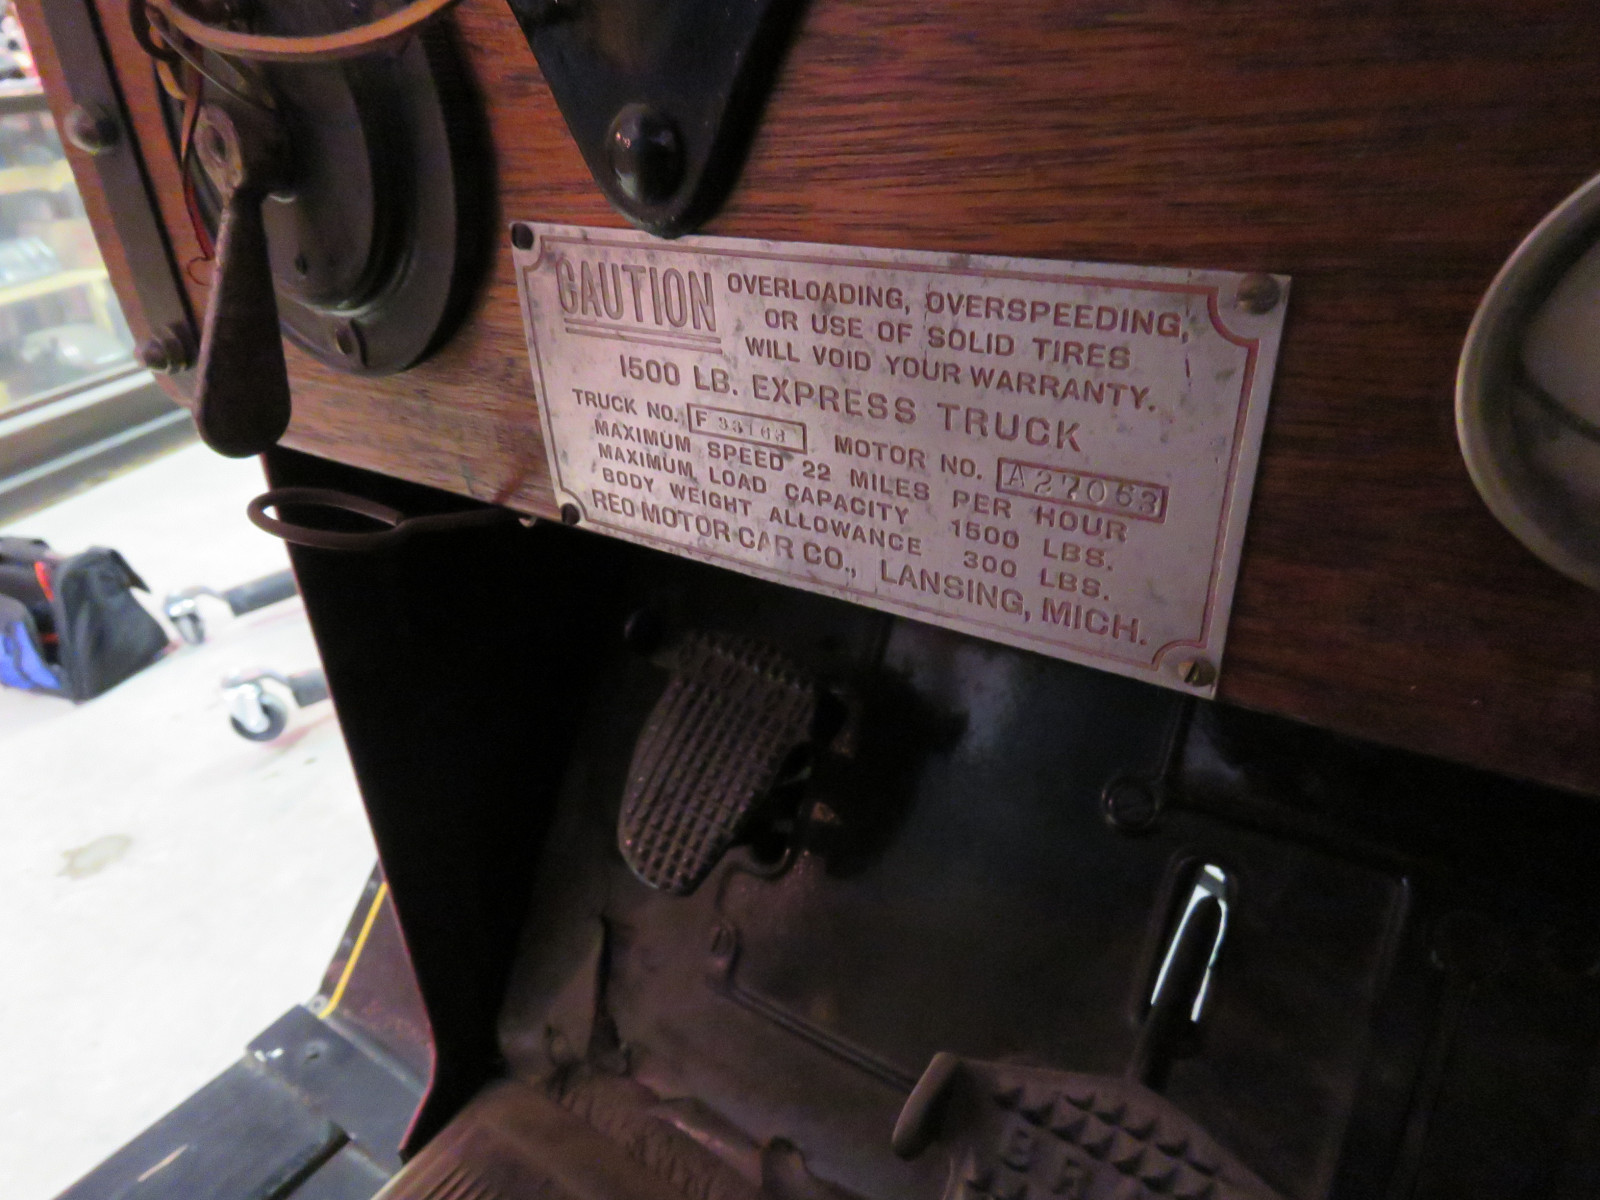 Rare 1920 REO Speedwagon Canopy Express Truck - Image 15